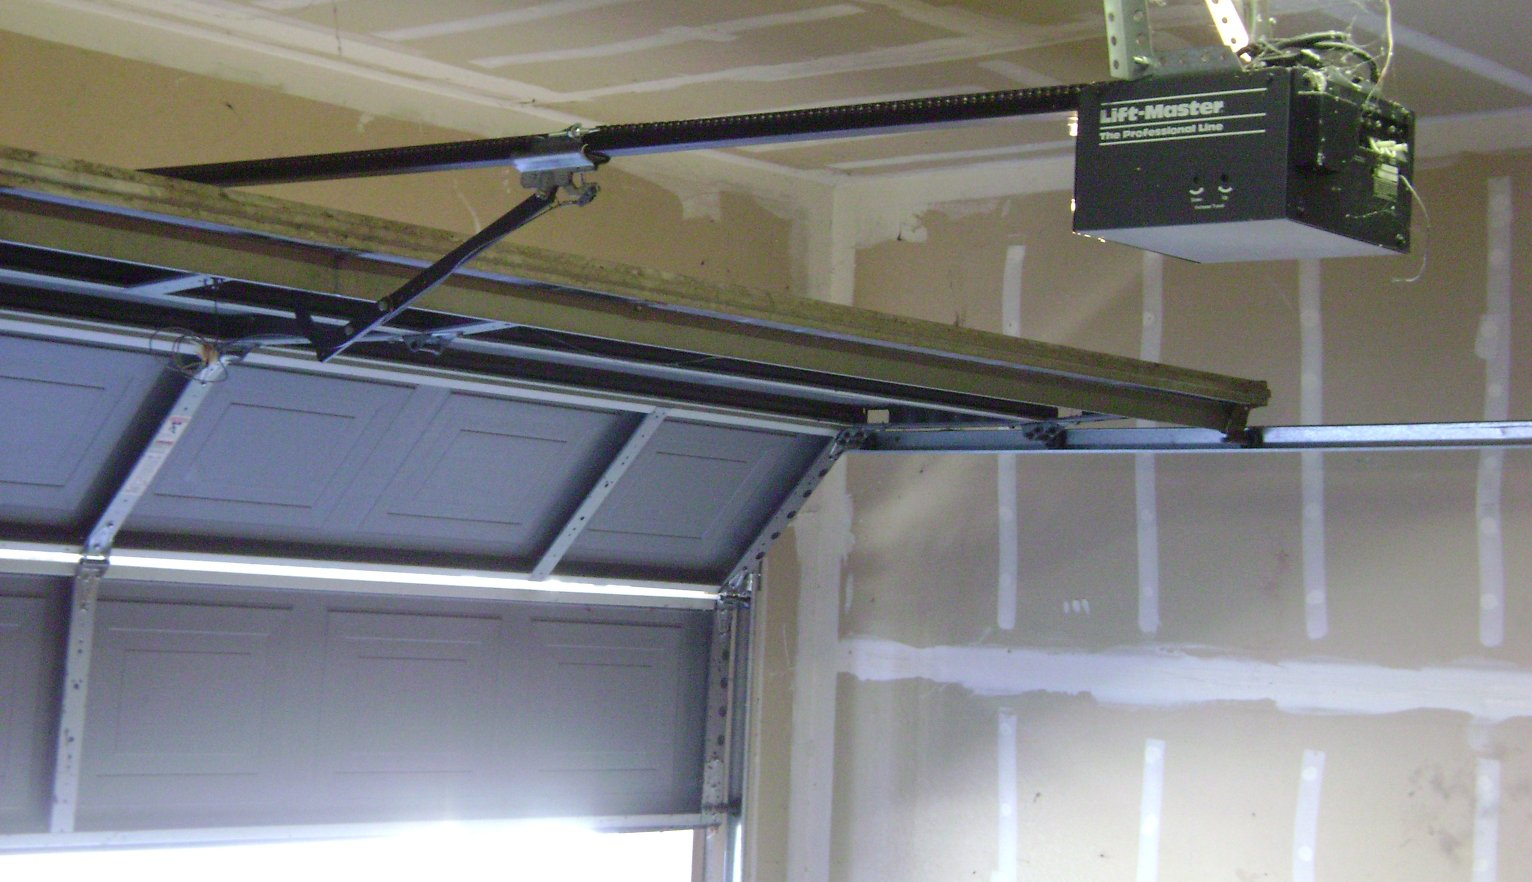 882 #4F5A7C Tips In Preparing Space For A New Garage Door Adams Door Systems save image Garage Doors Installers 37771532